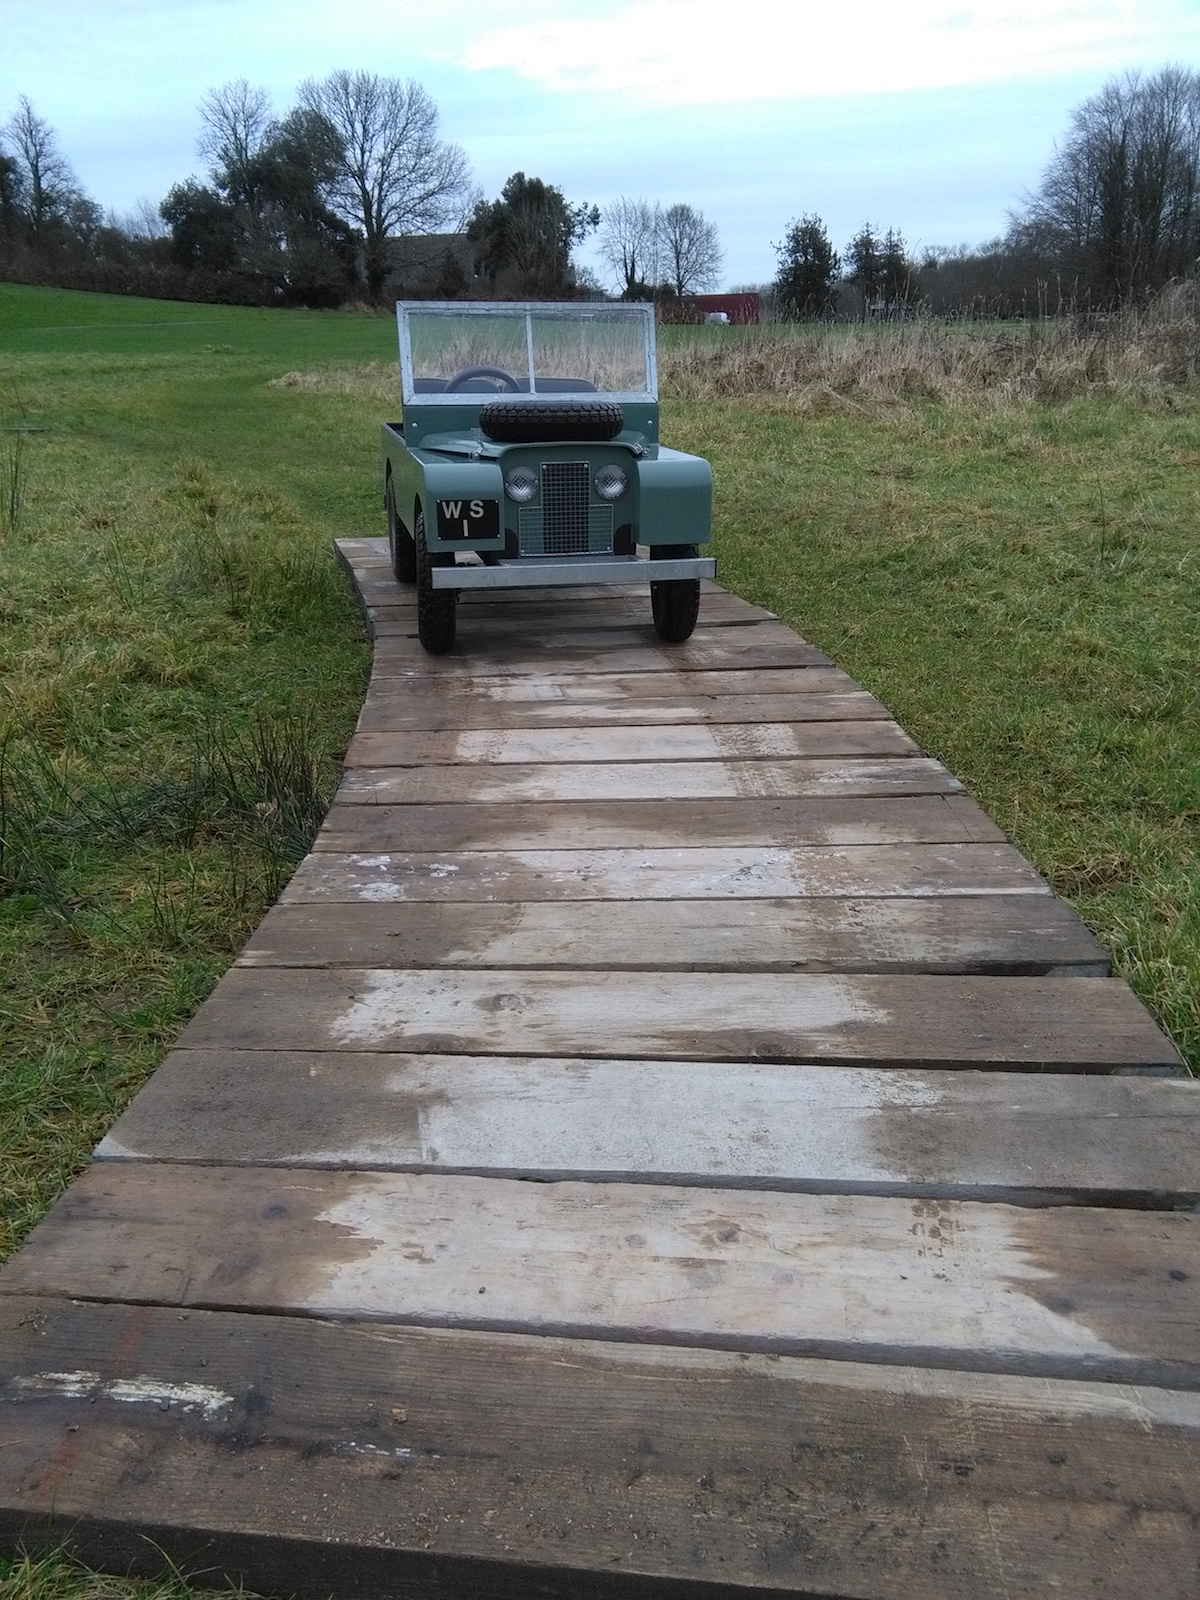 Lough Key Jeep on track